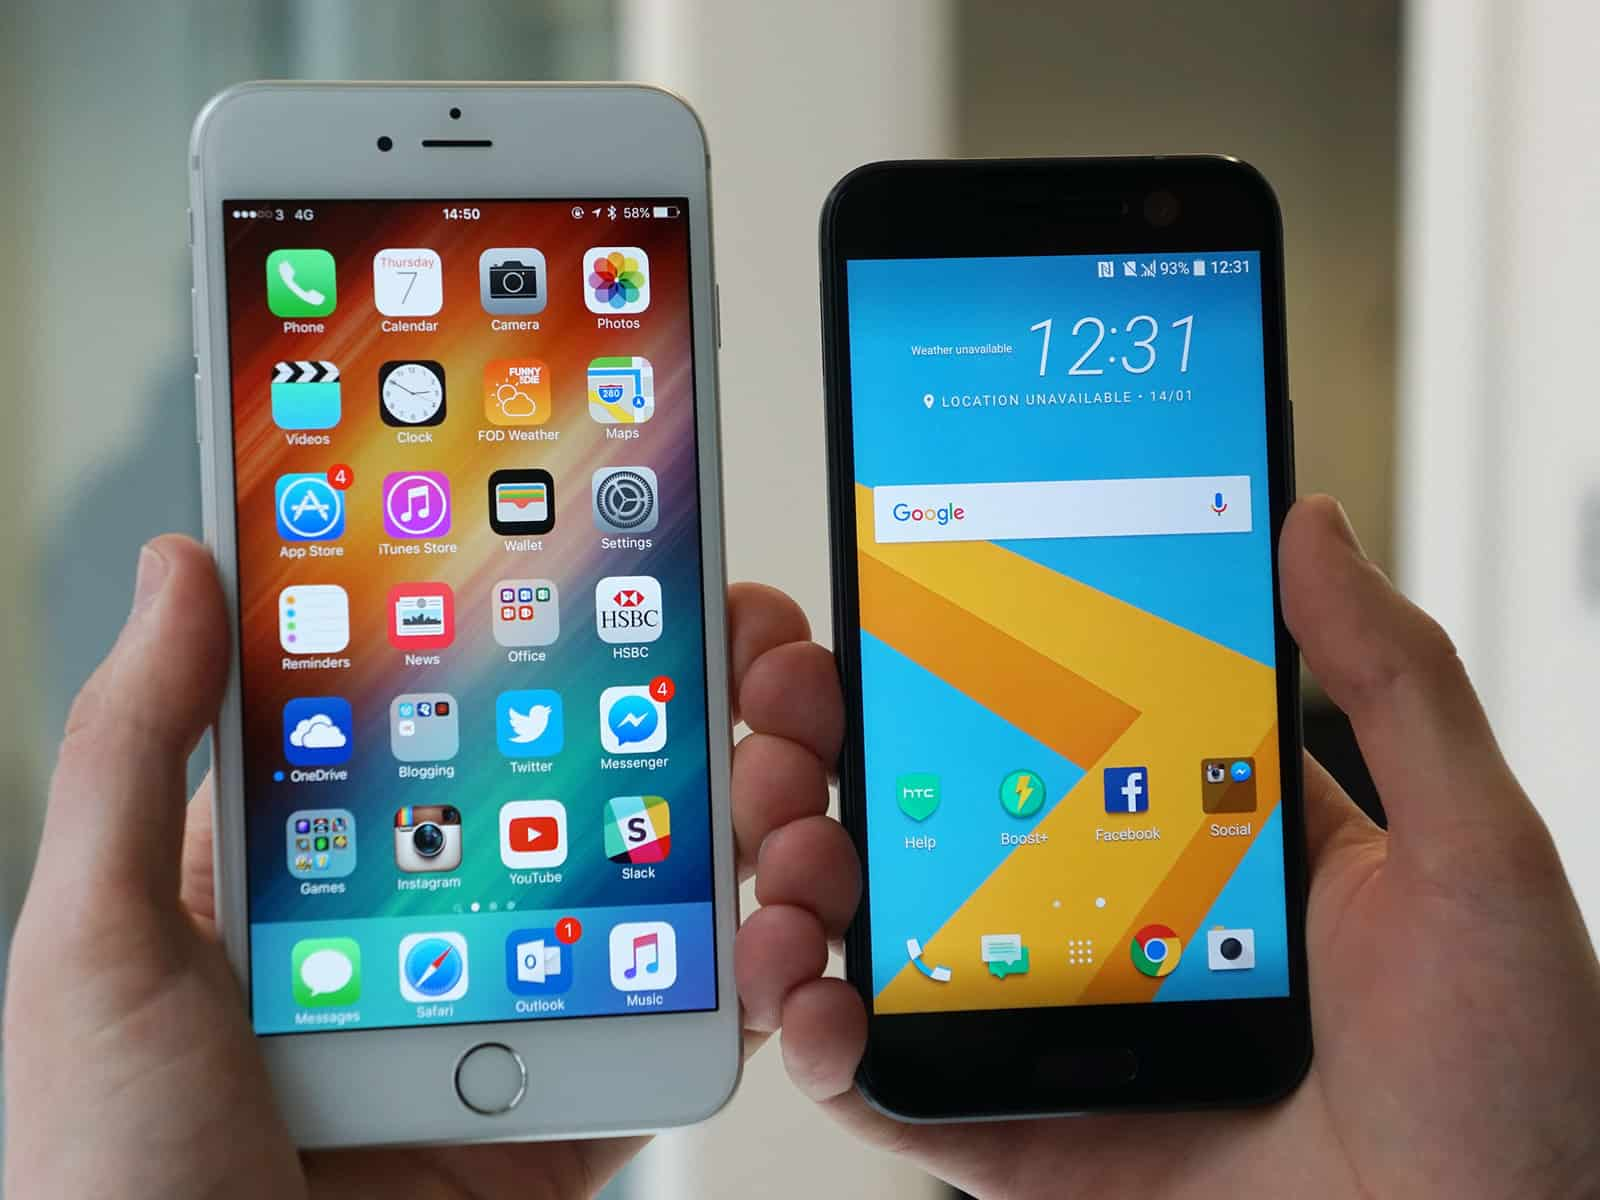 How To Switch Data From Old iPhone To New Android Phone Using dr.fone